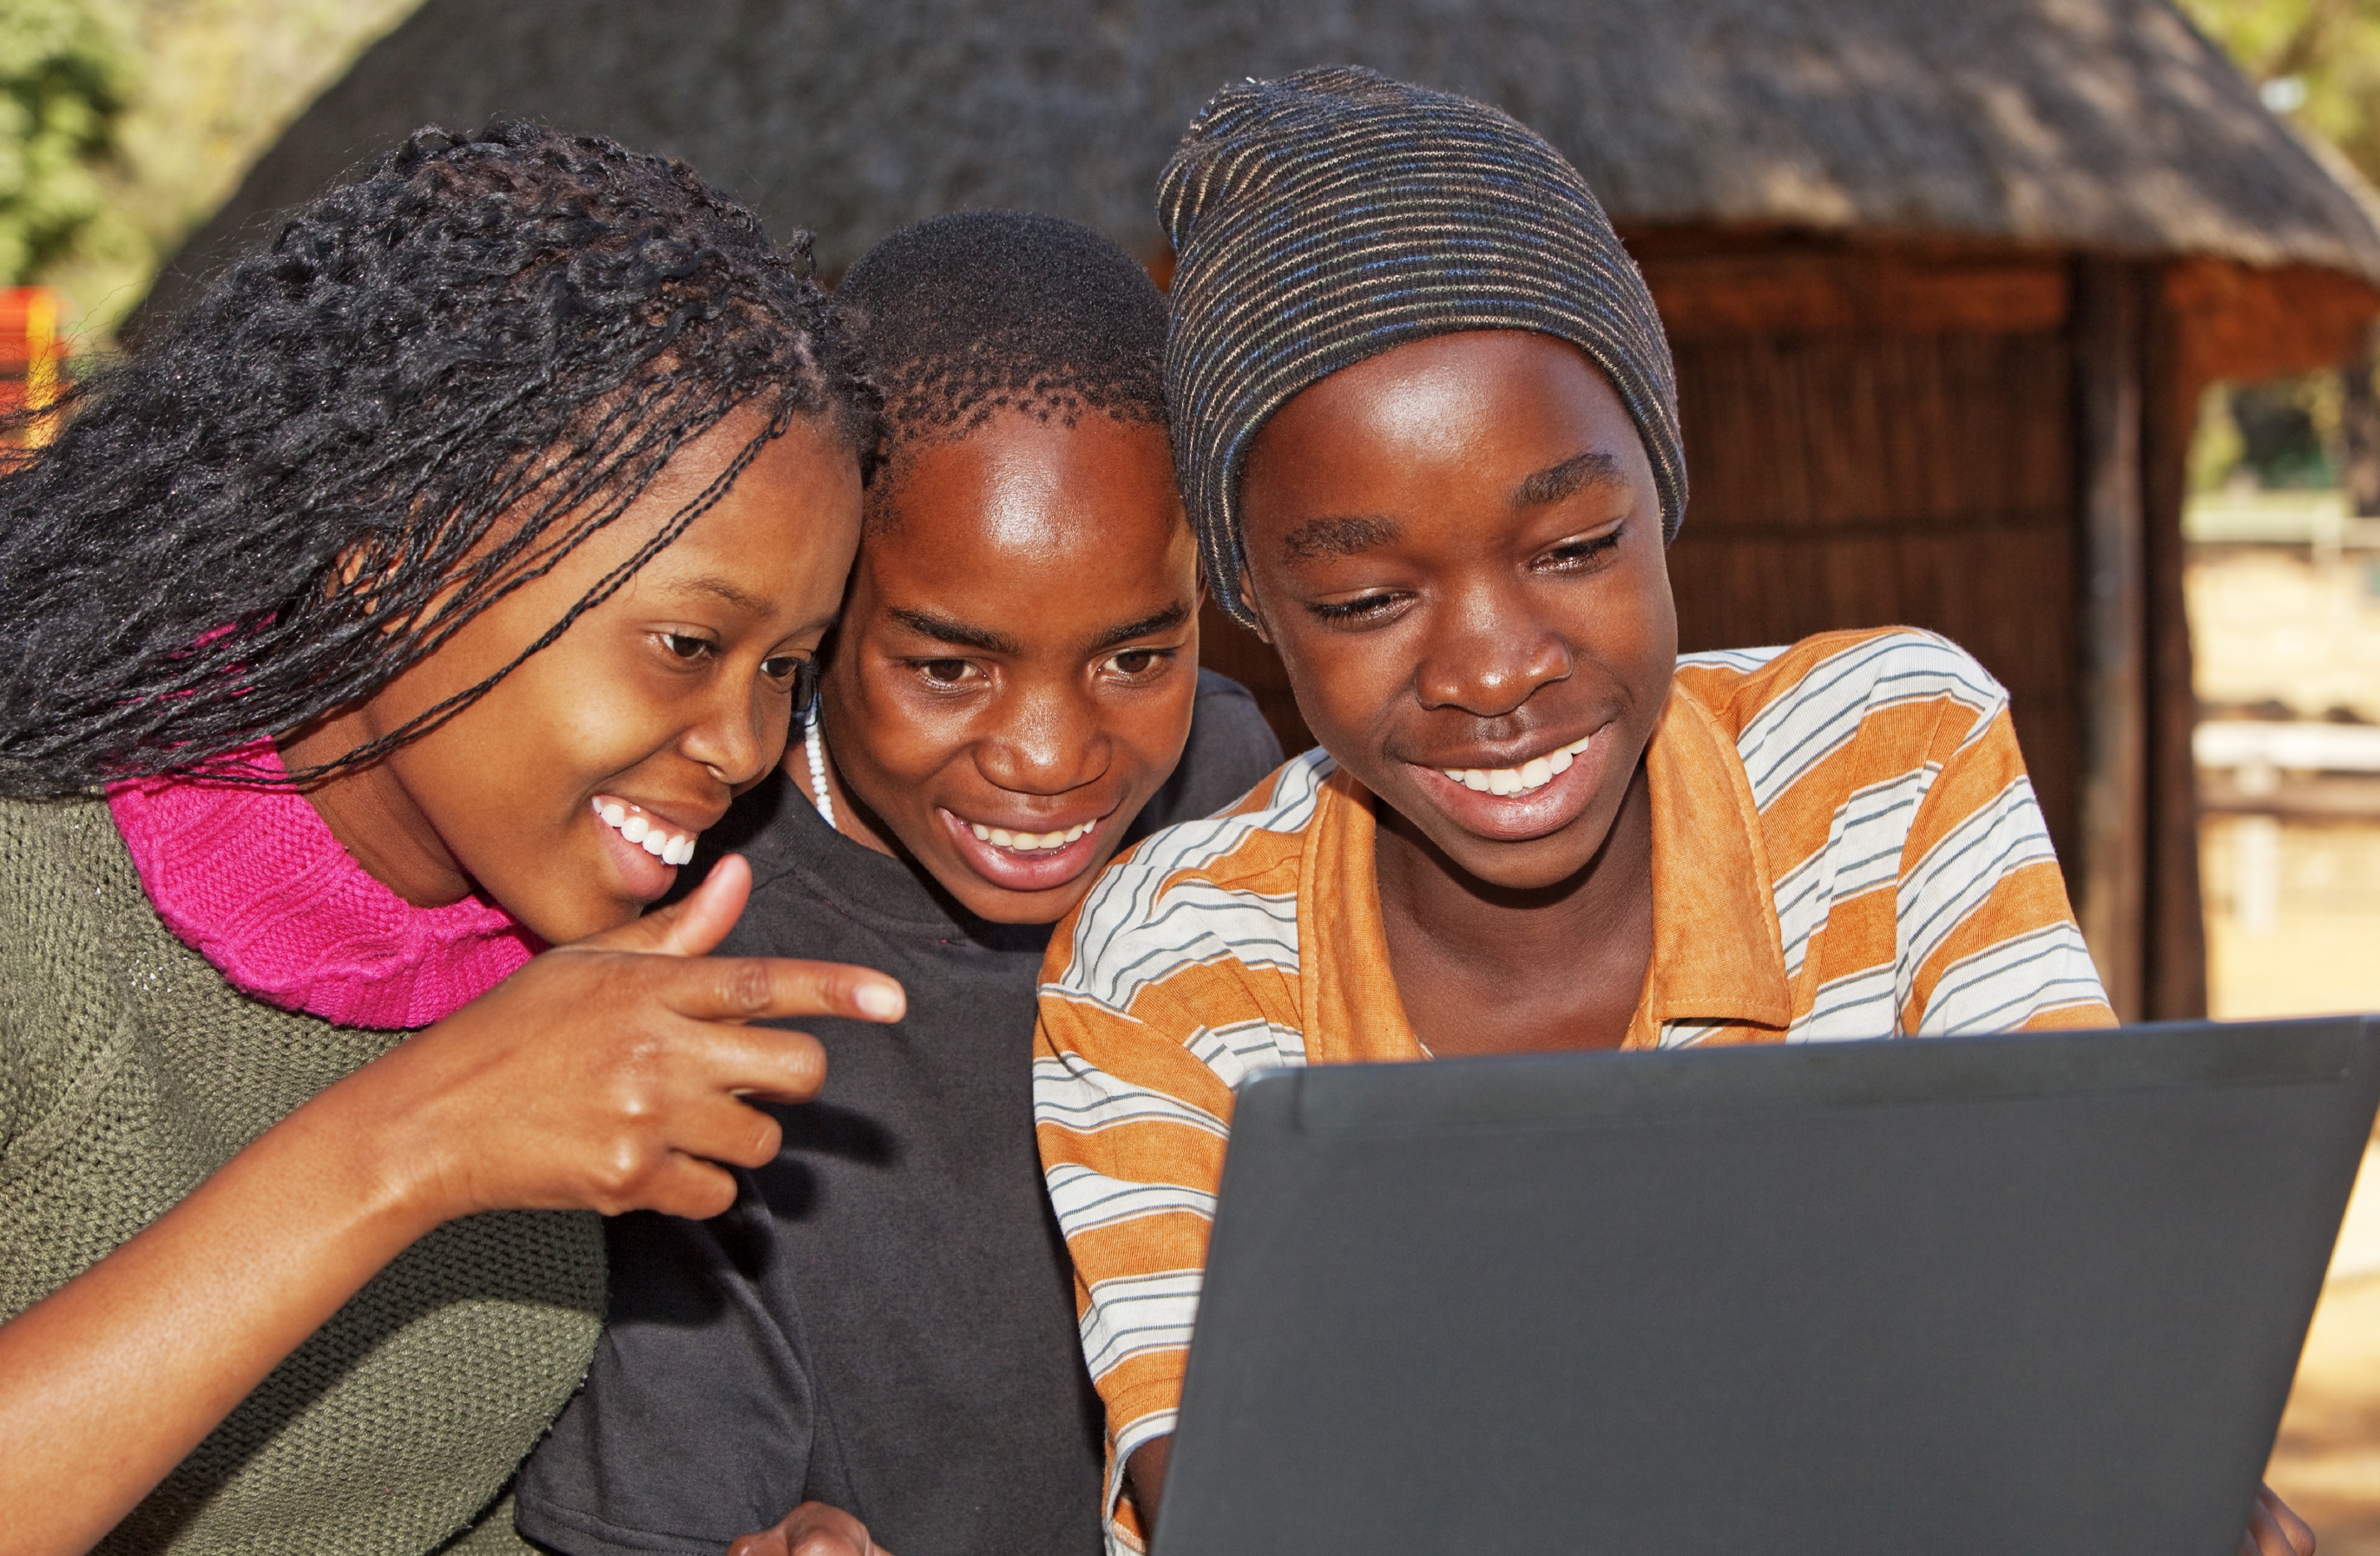 African kids with laptop